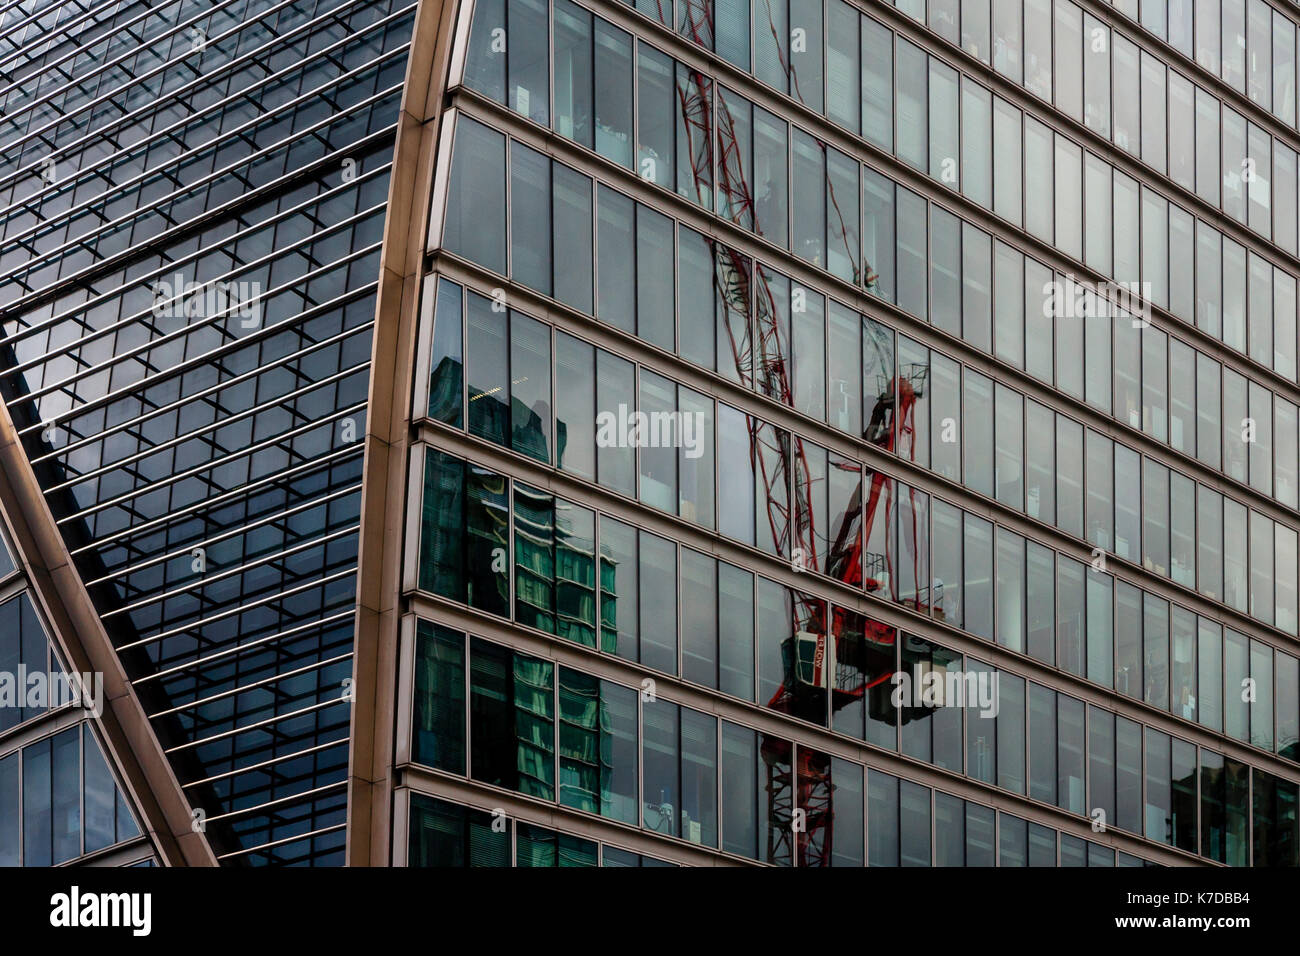 Architectural Detail, Moor House, Moorgate, The City Of London, London, UK - Stock Image